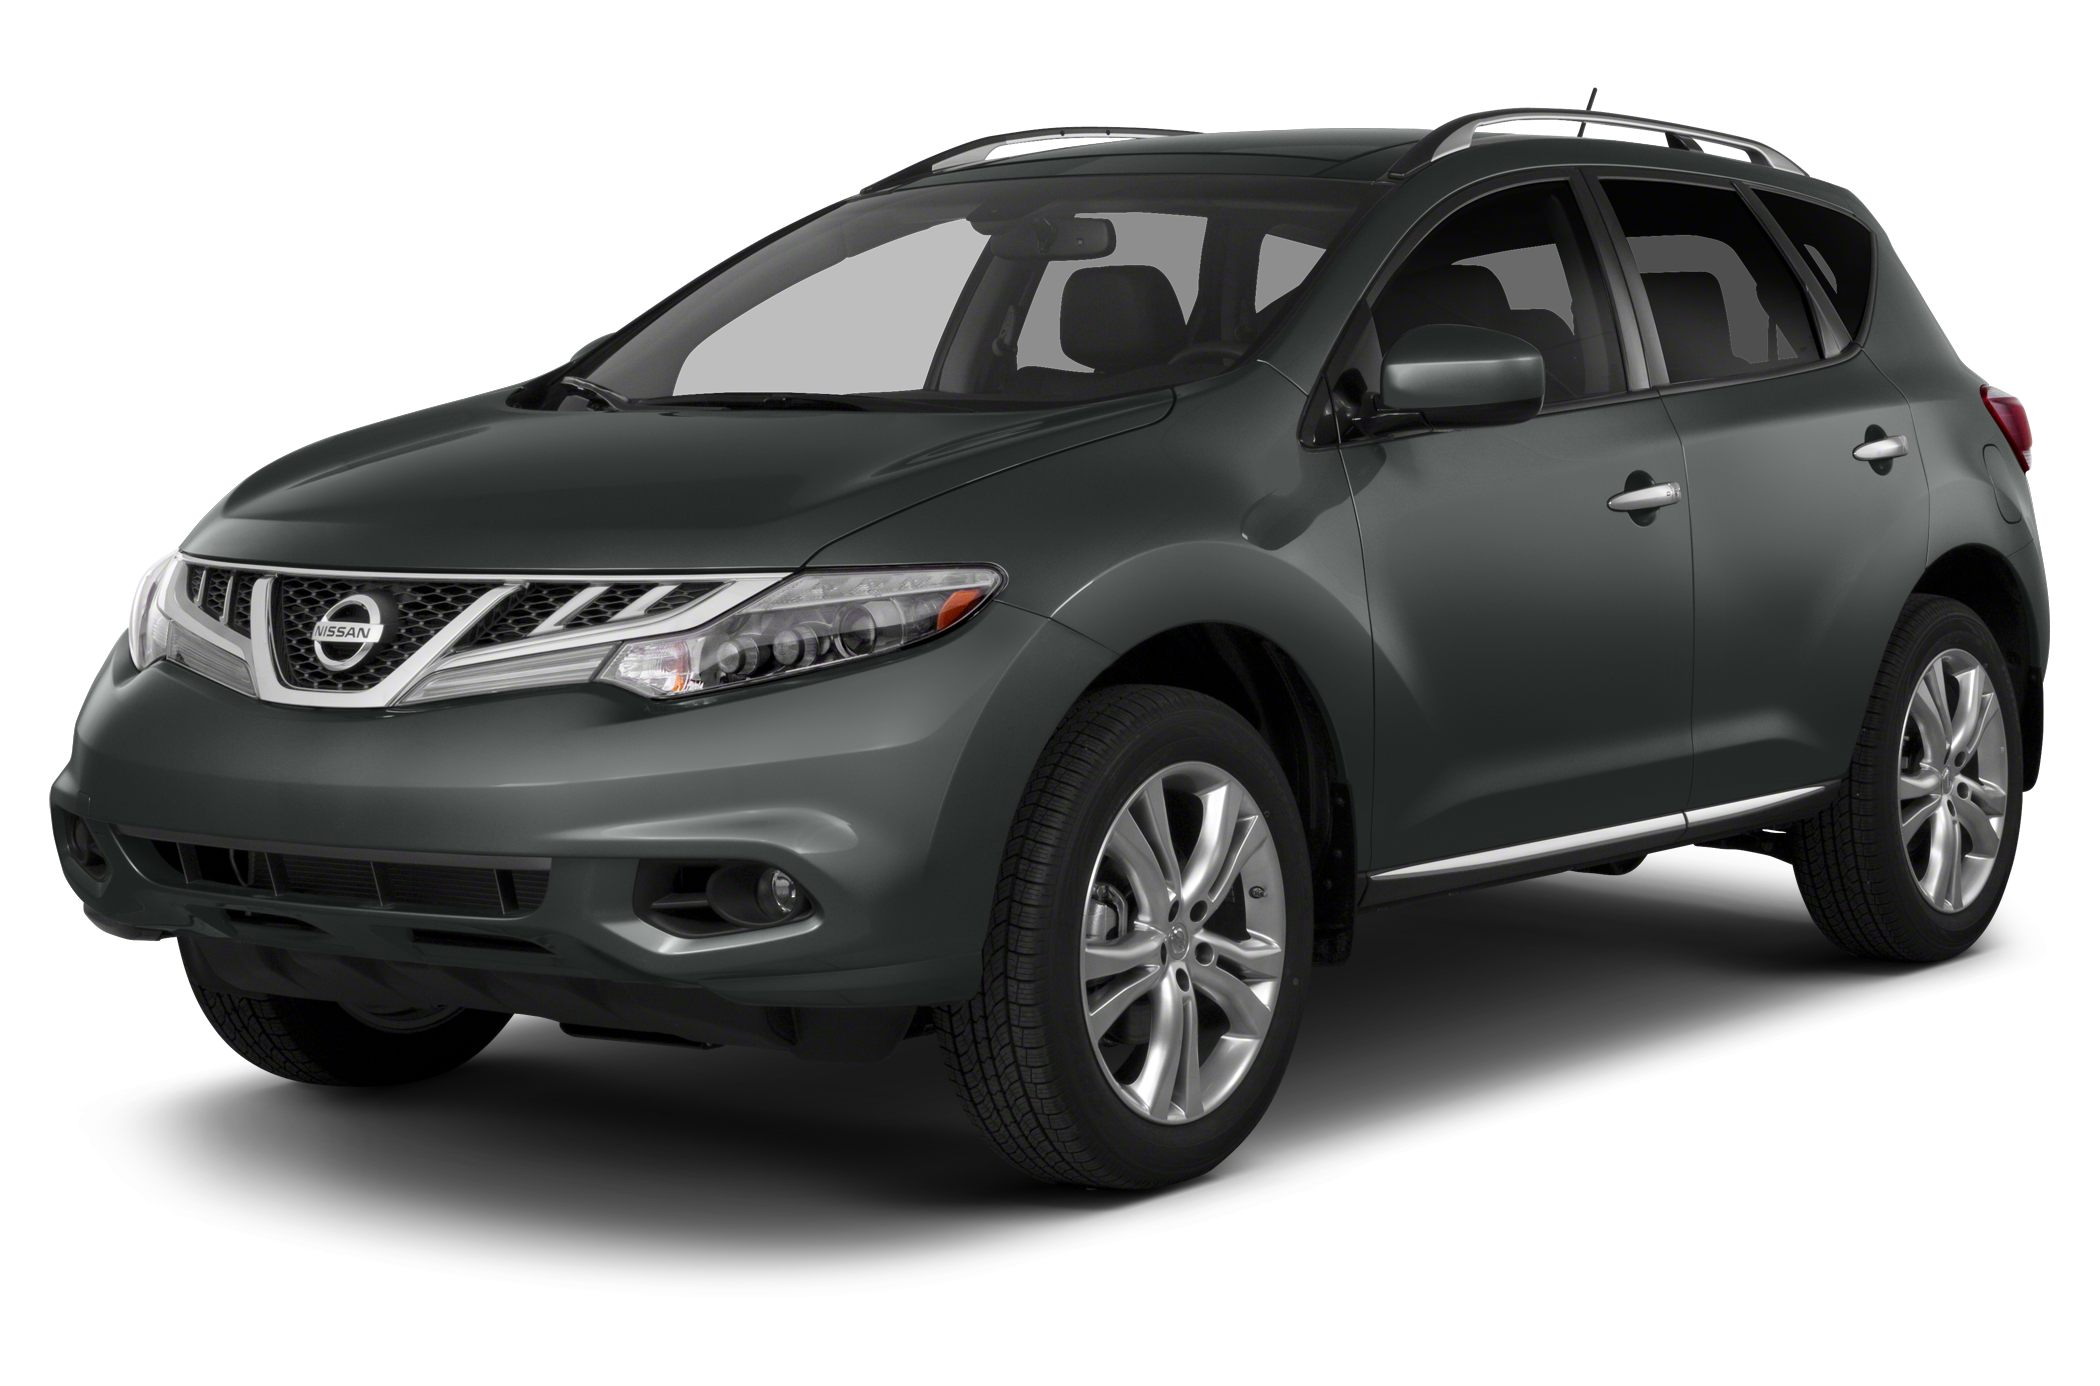 2014 Nissan Murano S Proudly serving manatee county for over 60 years offering Cars Trucks SUVs